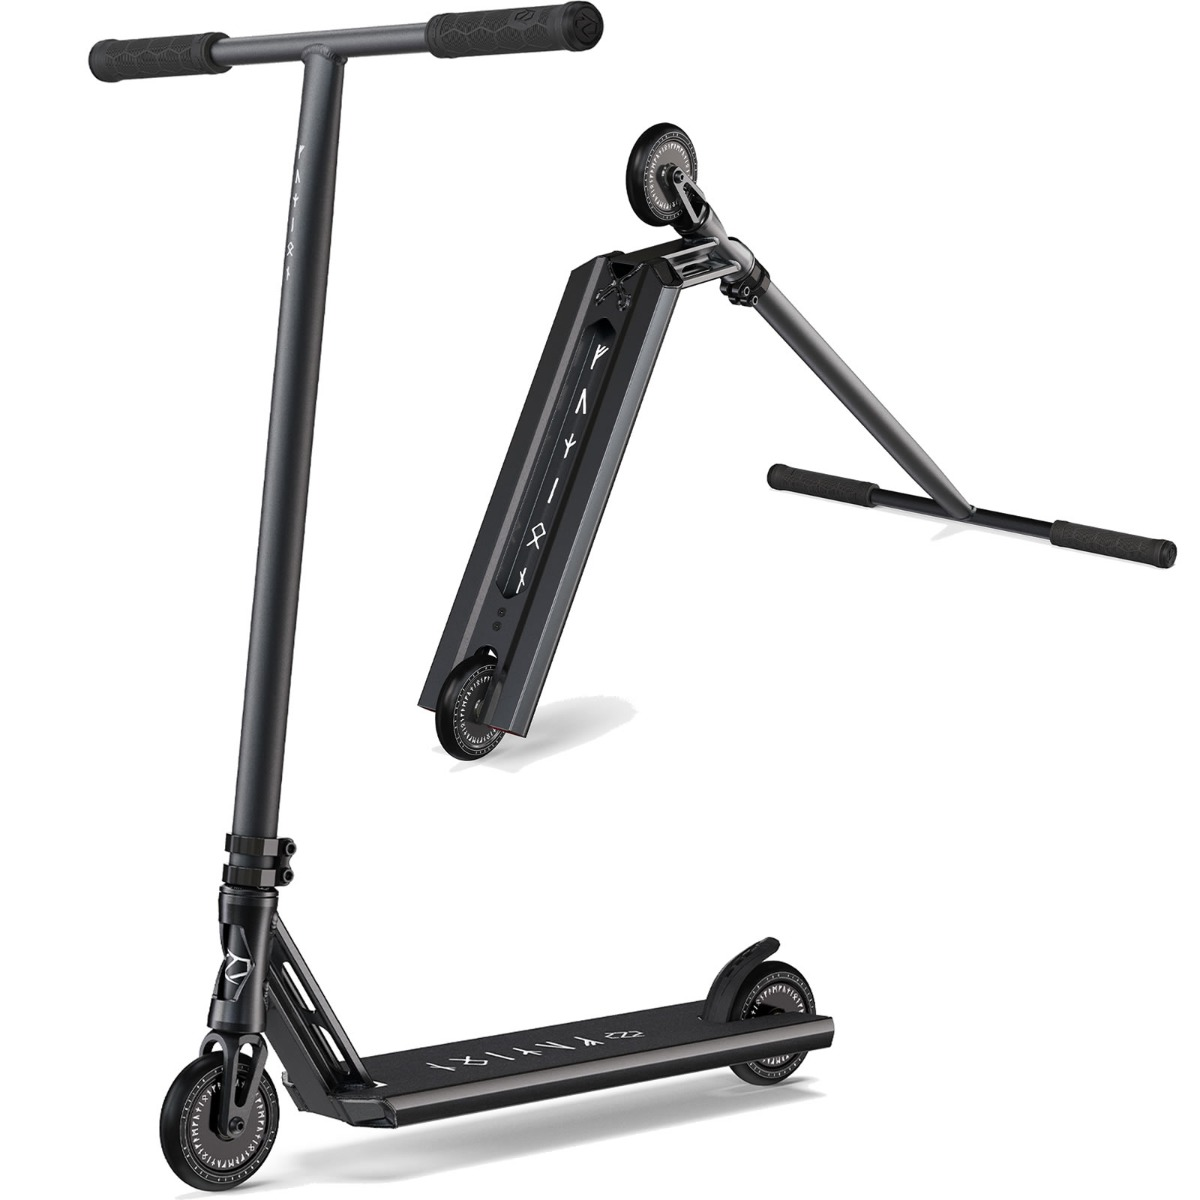 An image of Fuzion Z350 2021 Boxed Street Stunt Scooter - Black